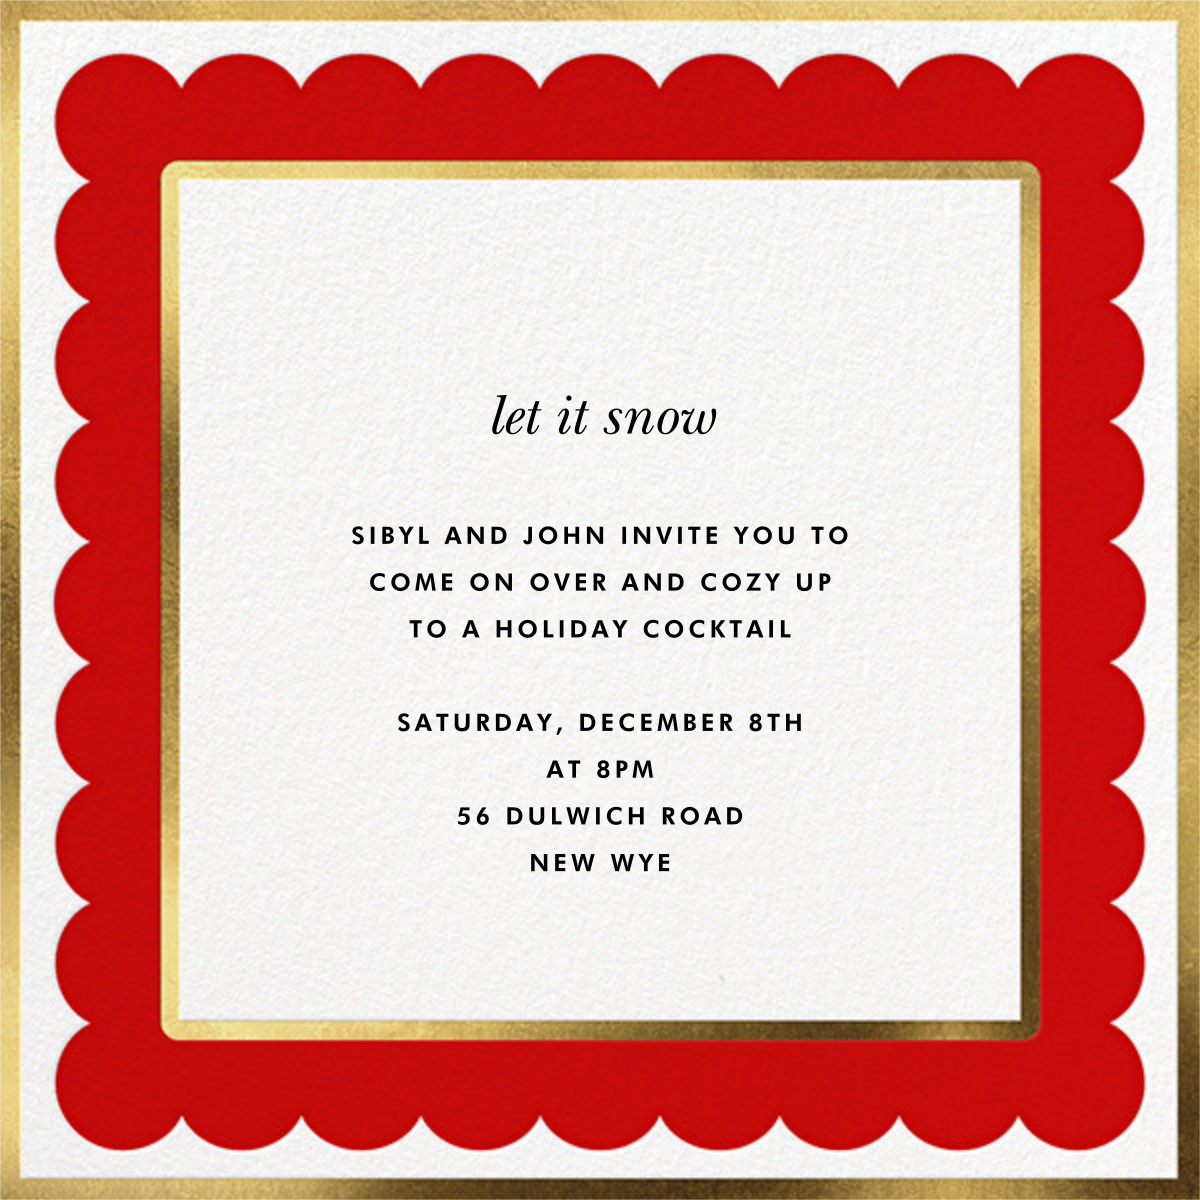 Scalloped Border - Red - kate spade new york - Holiday party